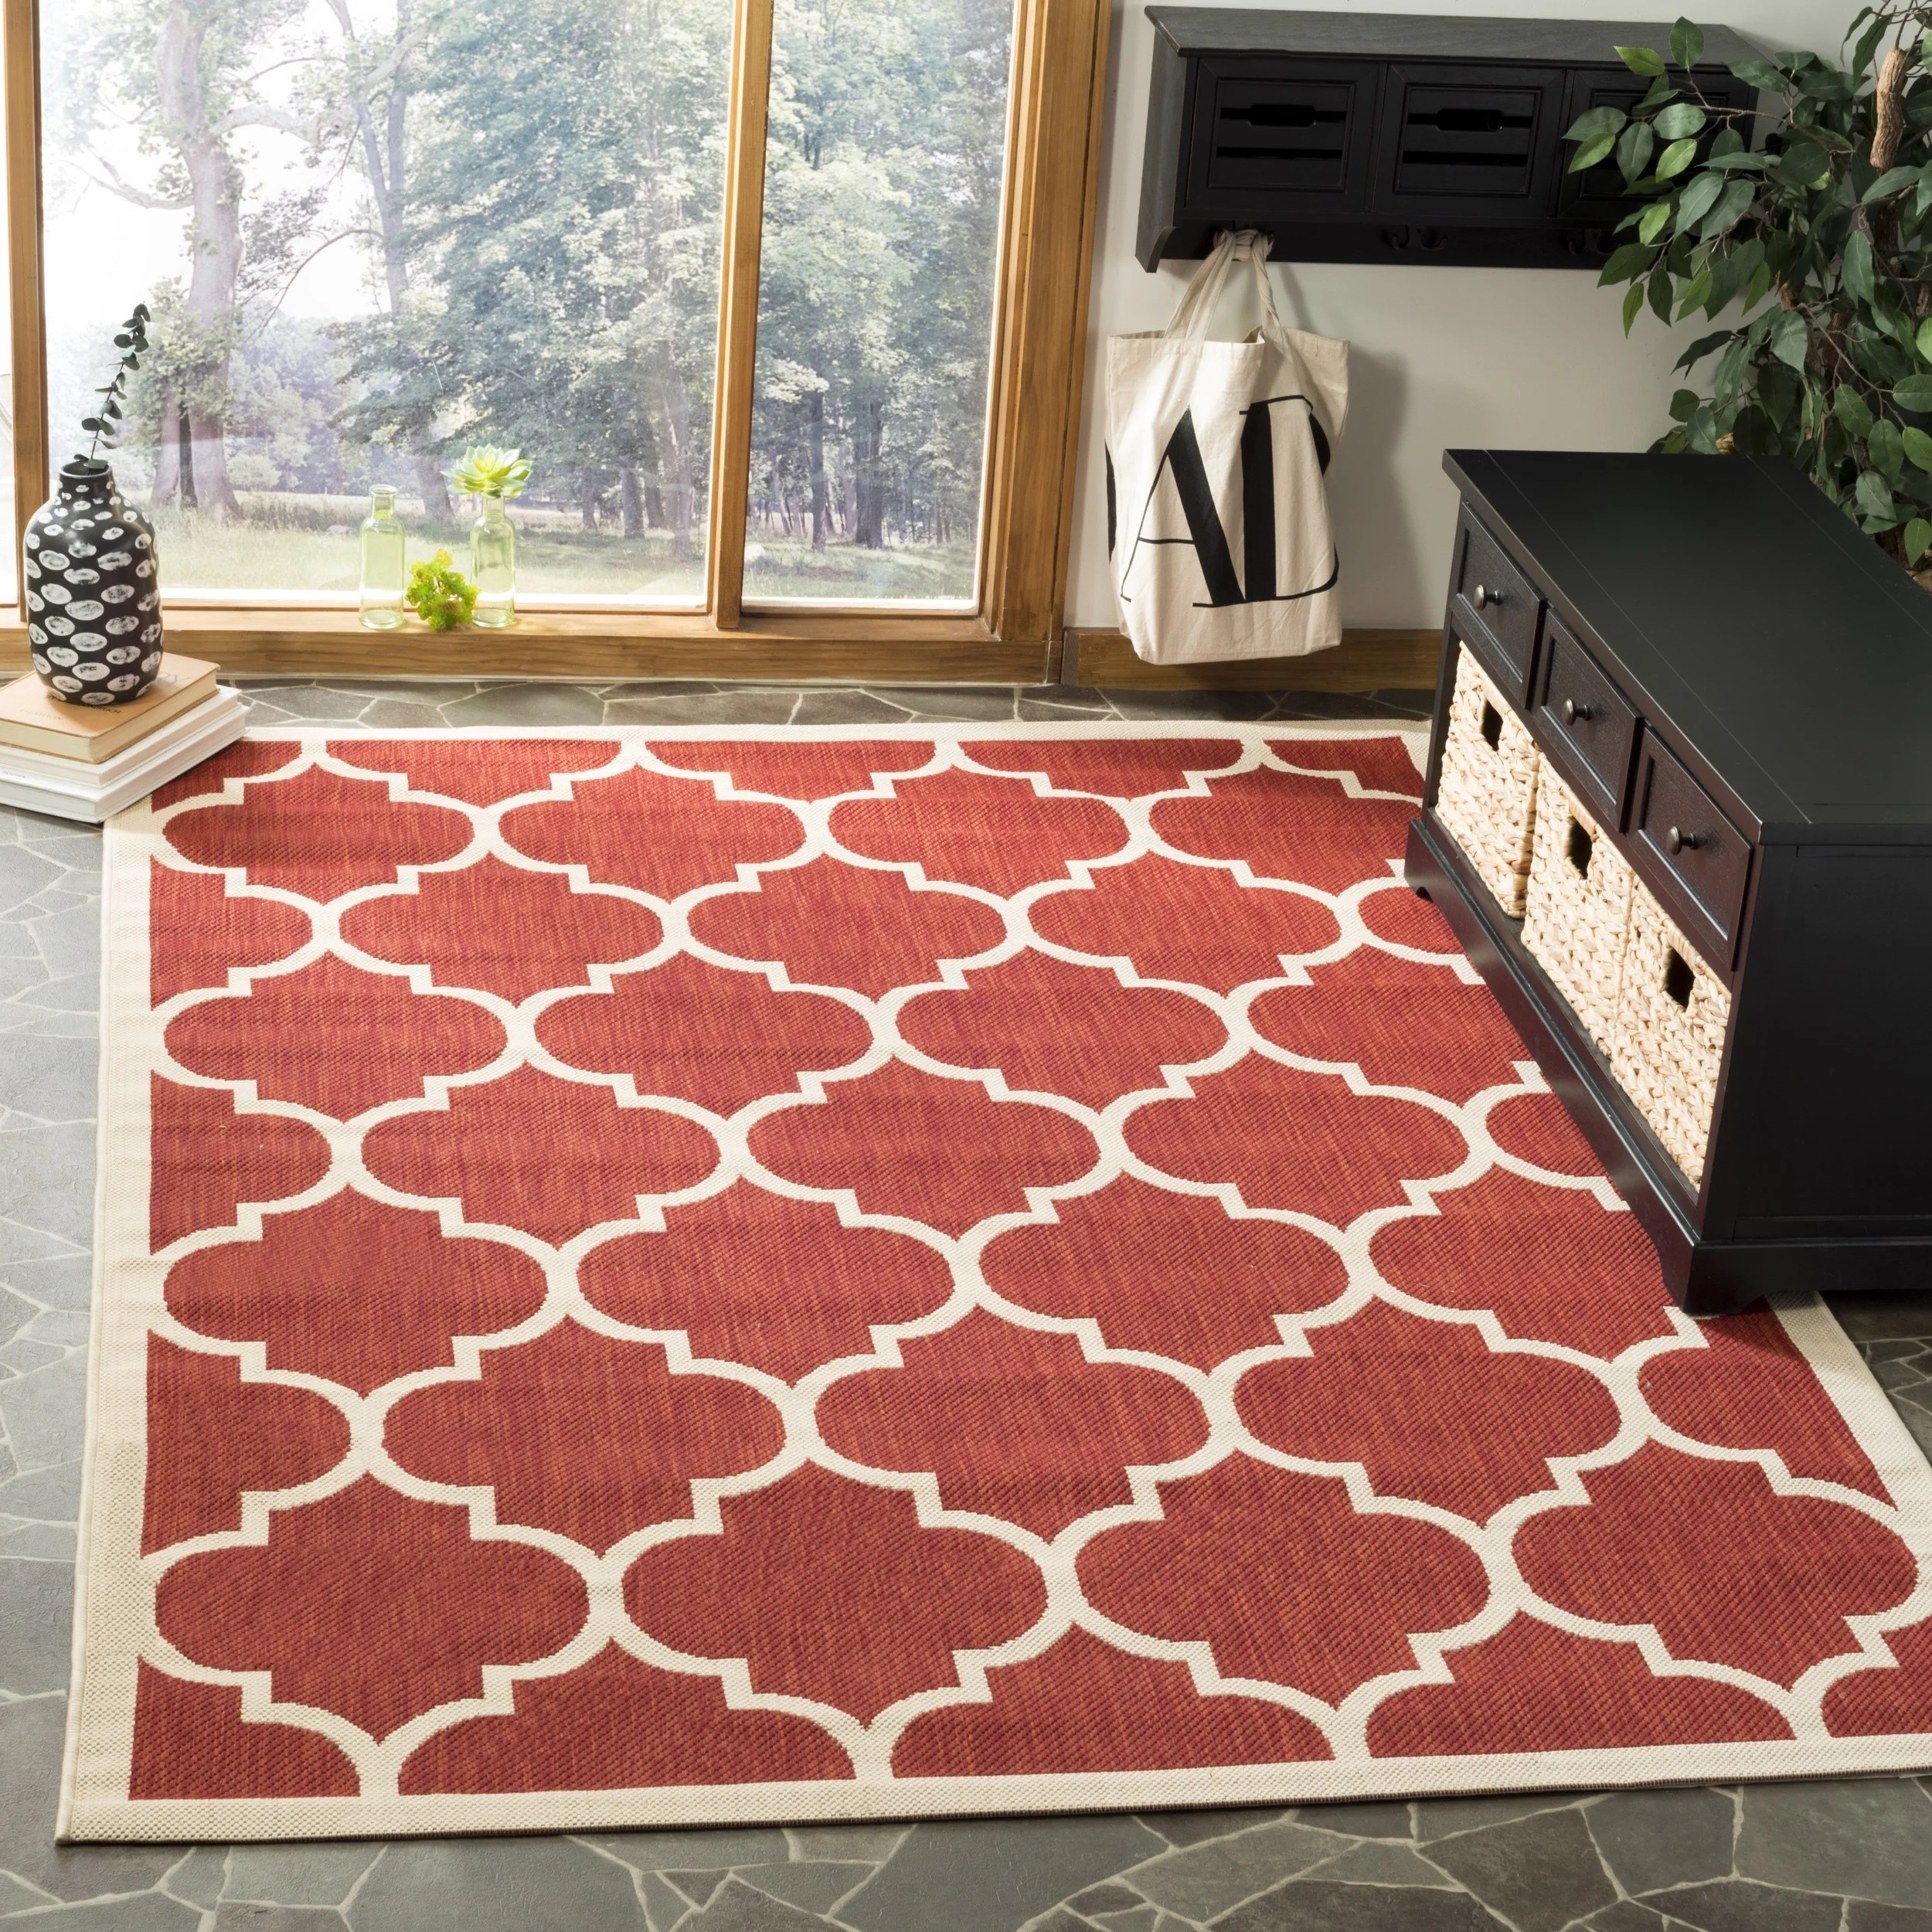 Safavieh Courtyard Safavieh Courtyard Lagoon Red Beige Indoor Outdoor Rug 5 3